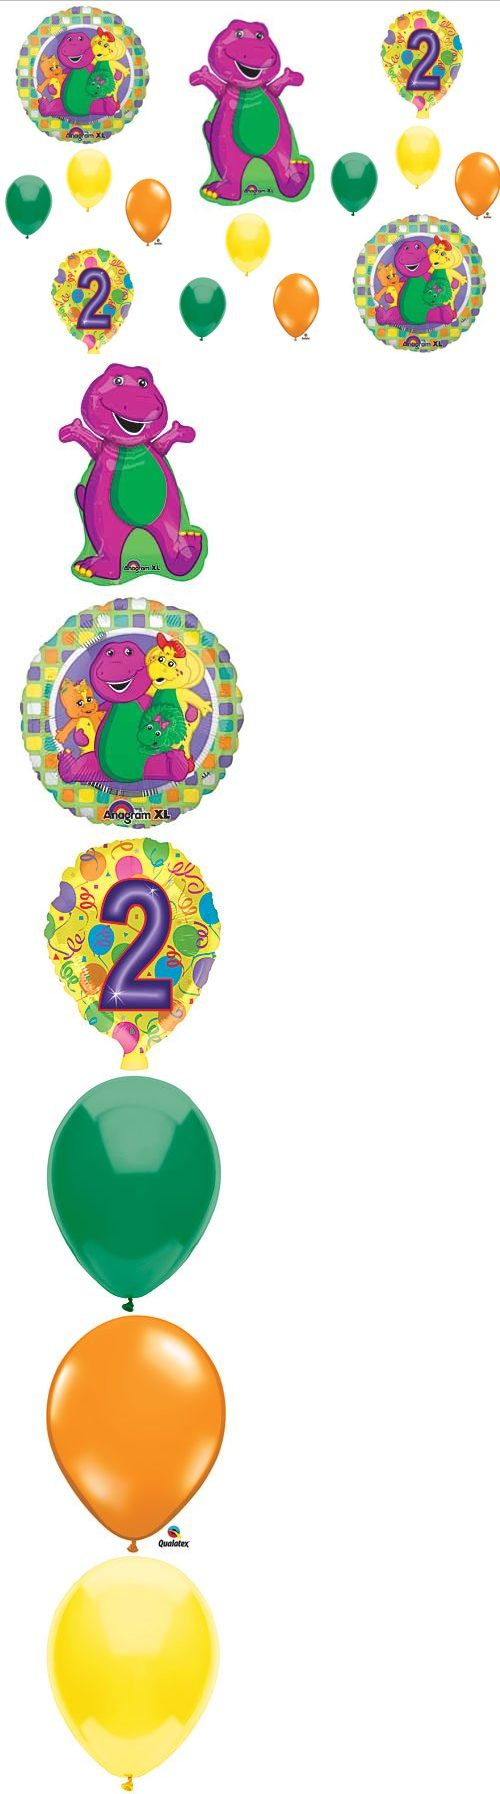 BARNEY 2nd BIRTHDAY PARTY Balloons Decorations Supplies Baby Bop - This listing is for an 14-piece Barney Birthday Party balloon kit for a 2nd Birthday.   You will receive:    One (1)  34 Barney Mylar shape balloon.   Two (2) 18 Barney and friends round mylar ballo... - Party Supplies - Office Products - $14.50